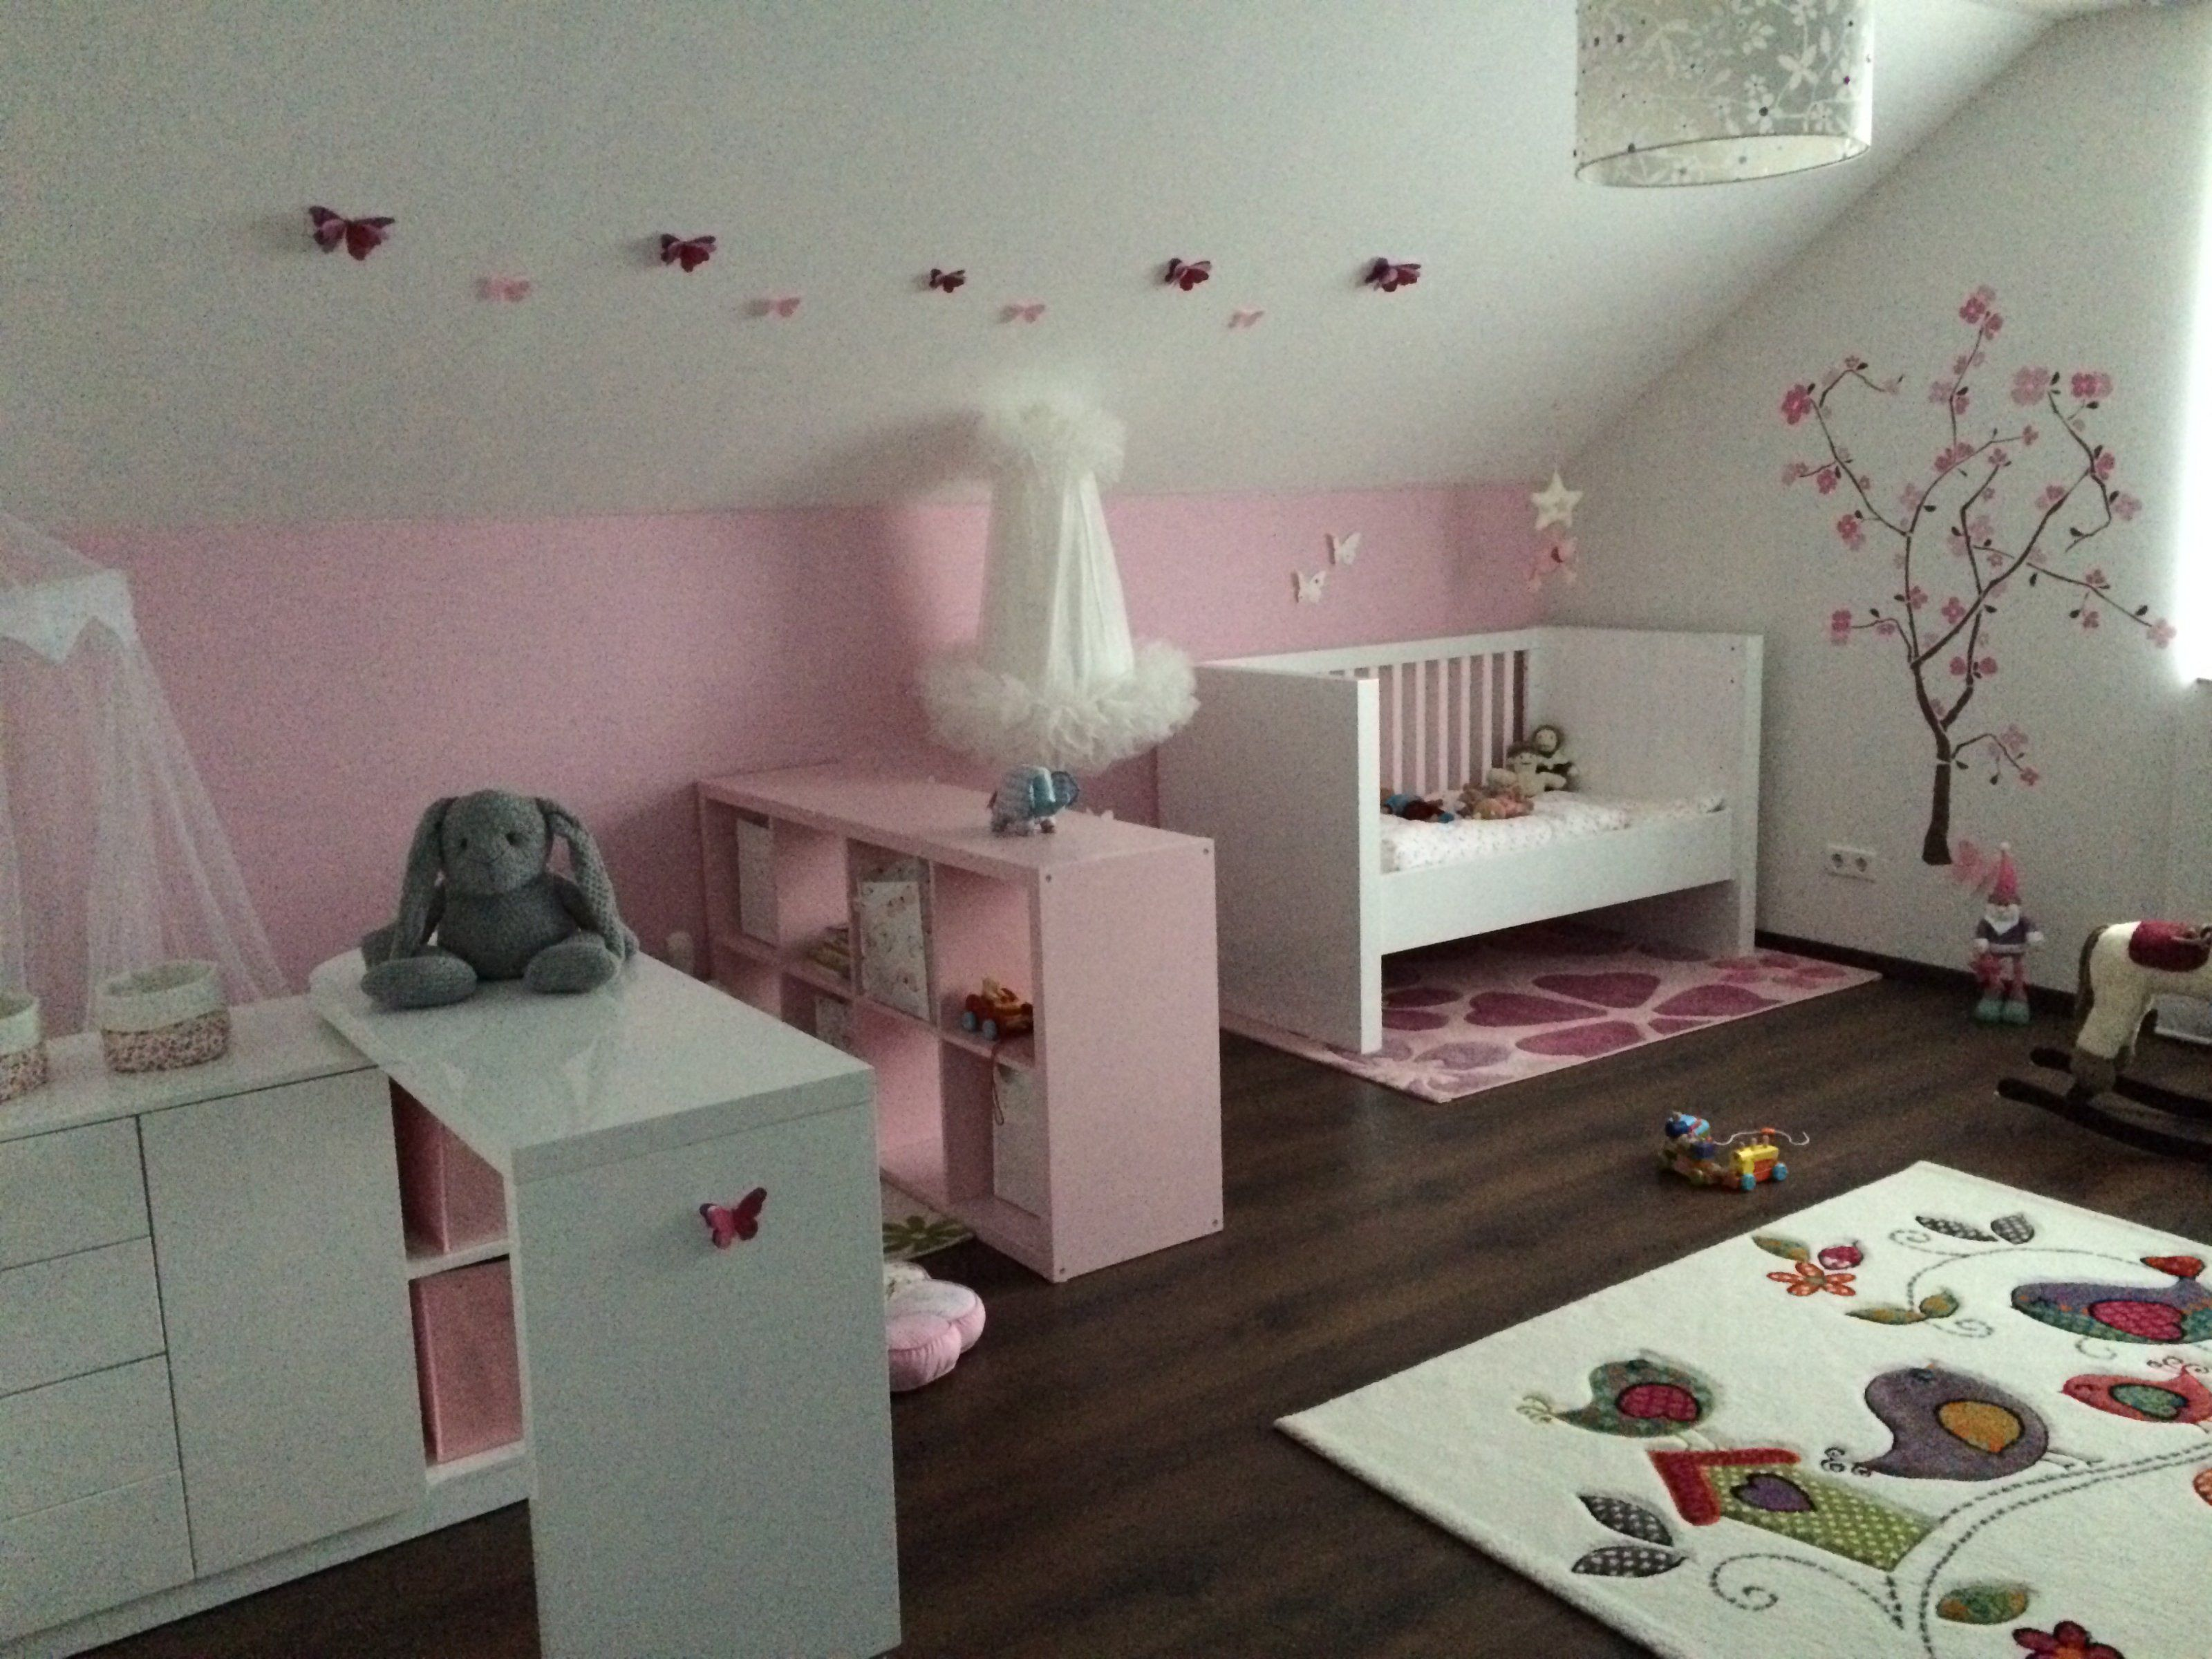 kinderzimmer 39 ein traum jeder prinzessin 39 unser yade. Black Bedroom Furniture Sets. Home Design Ideas